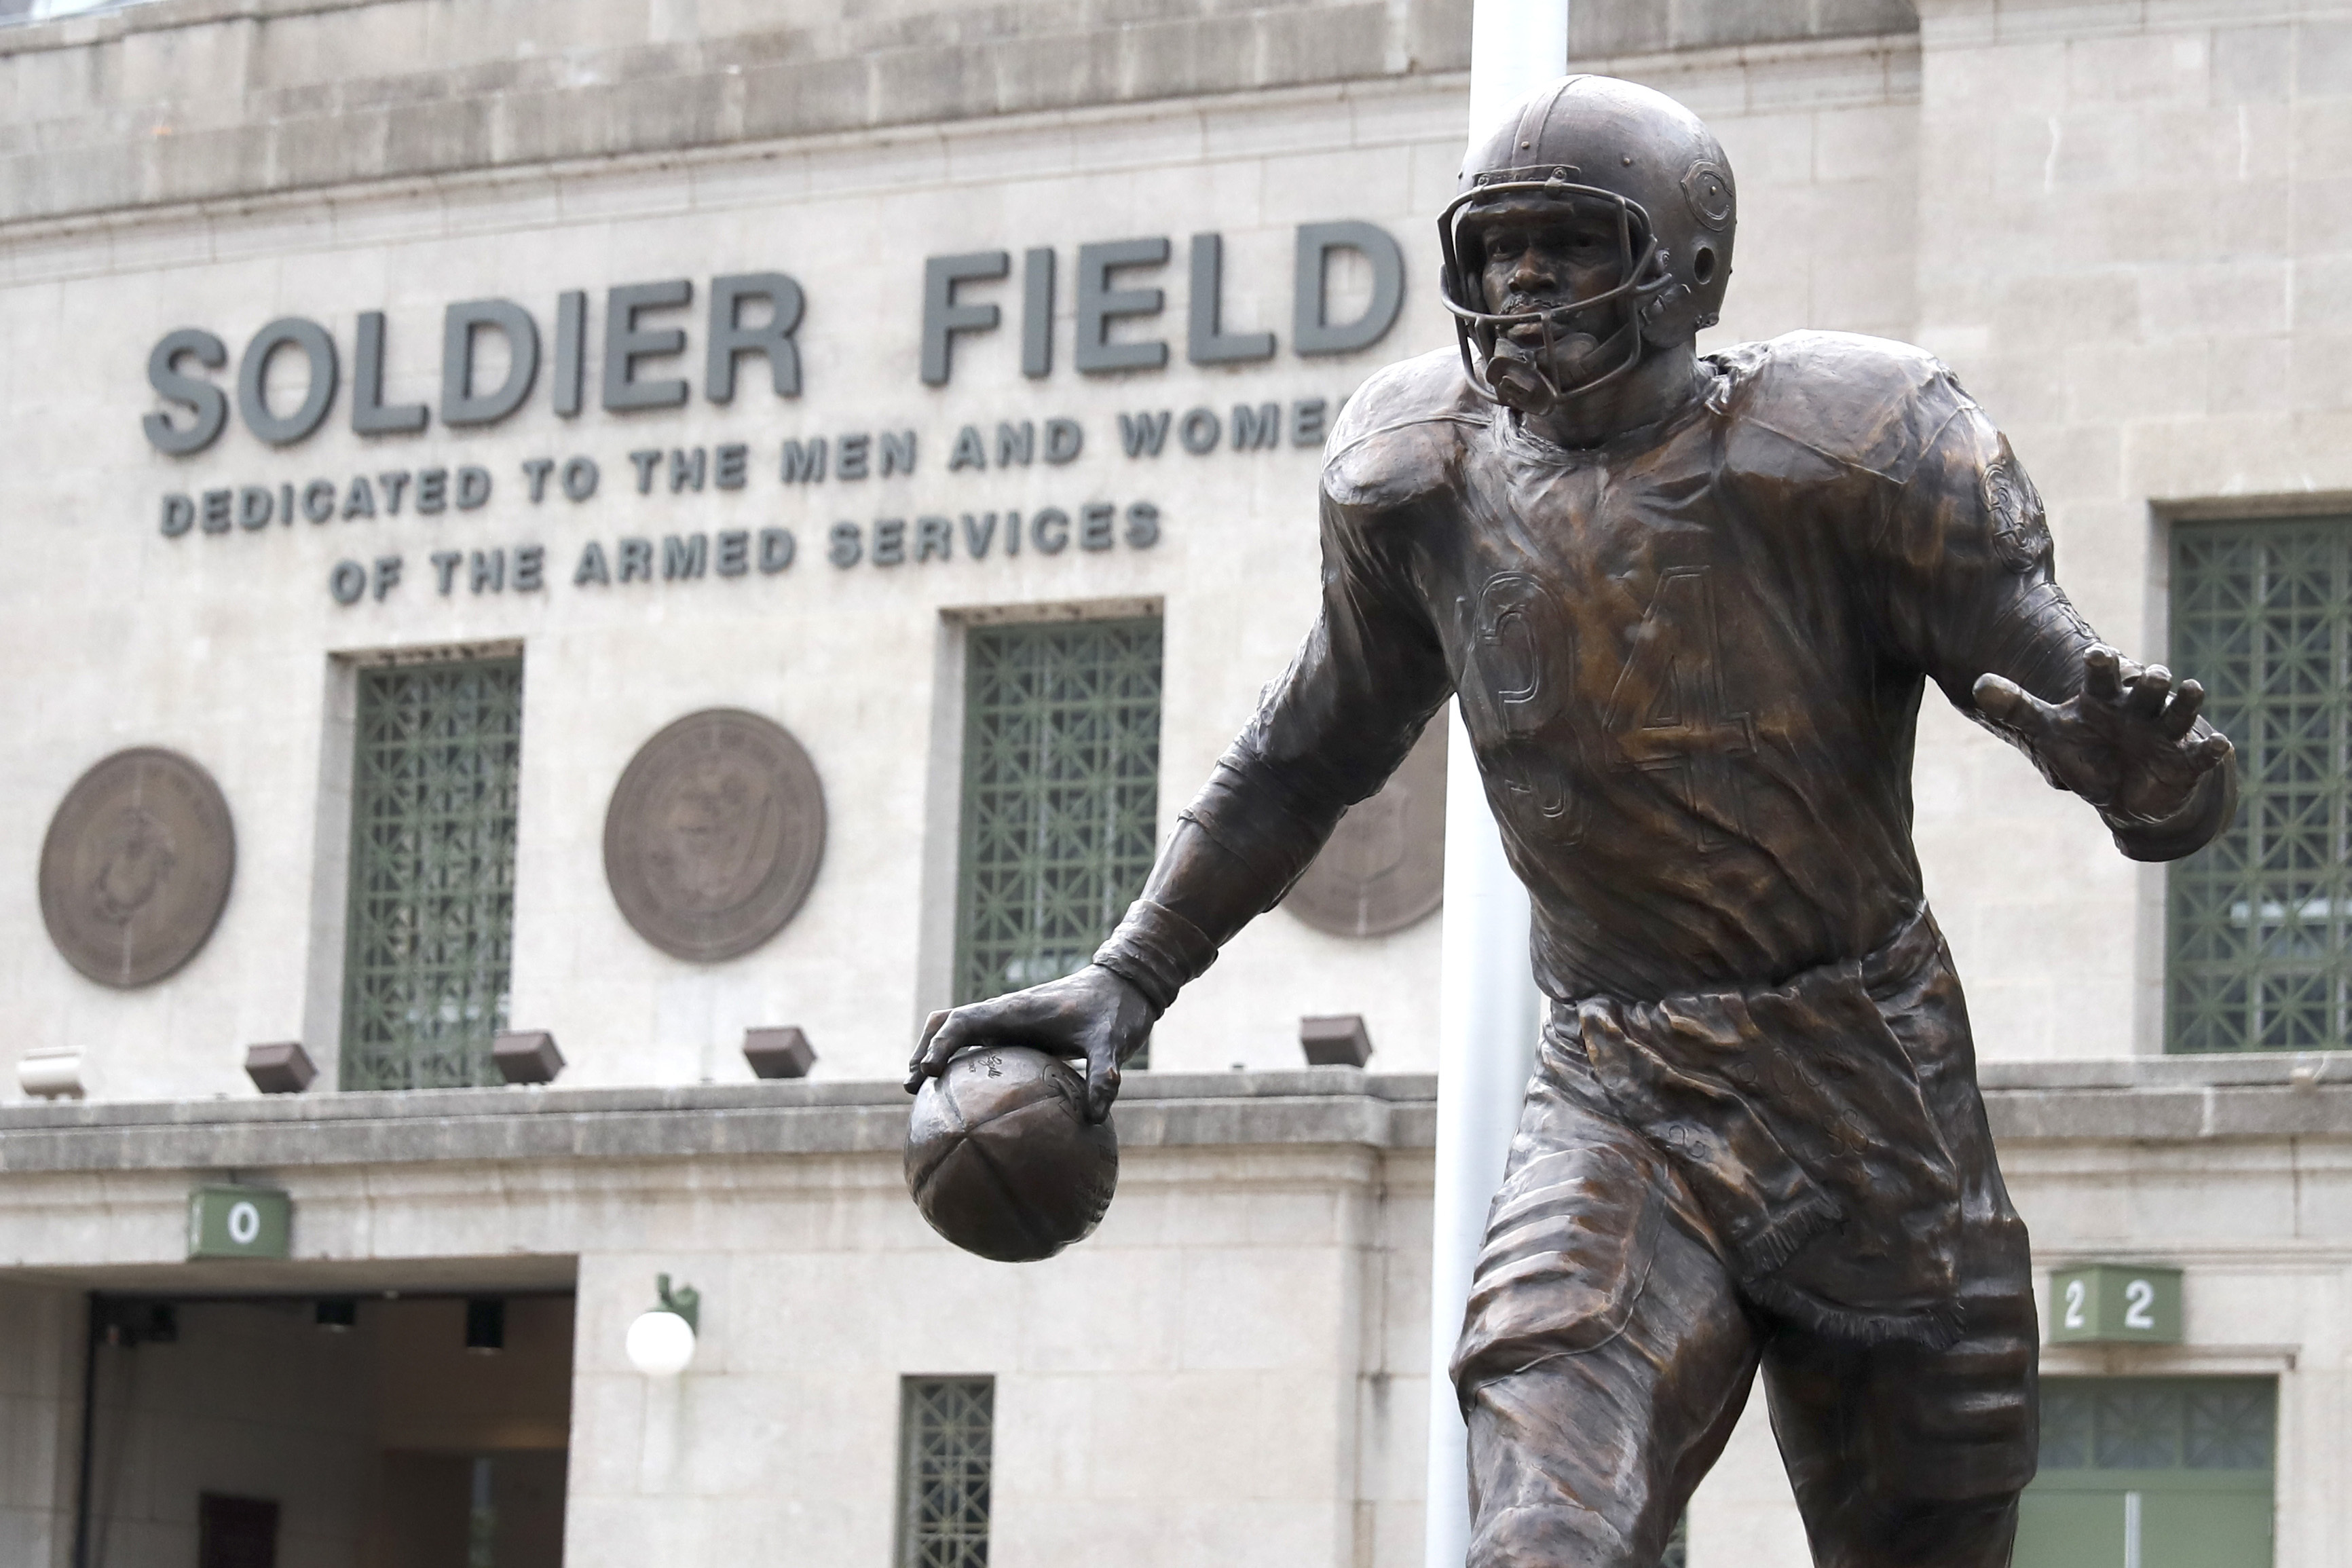 The newly dedicated statue of Chicago Bears and Pro Football Hall of Fame running back Walter Payton stands outside Soldier Field